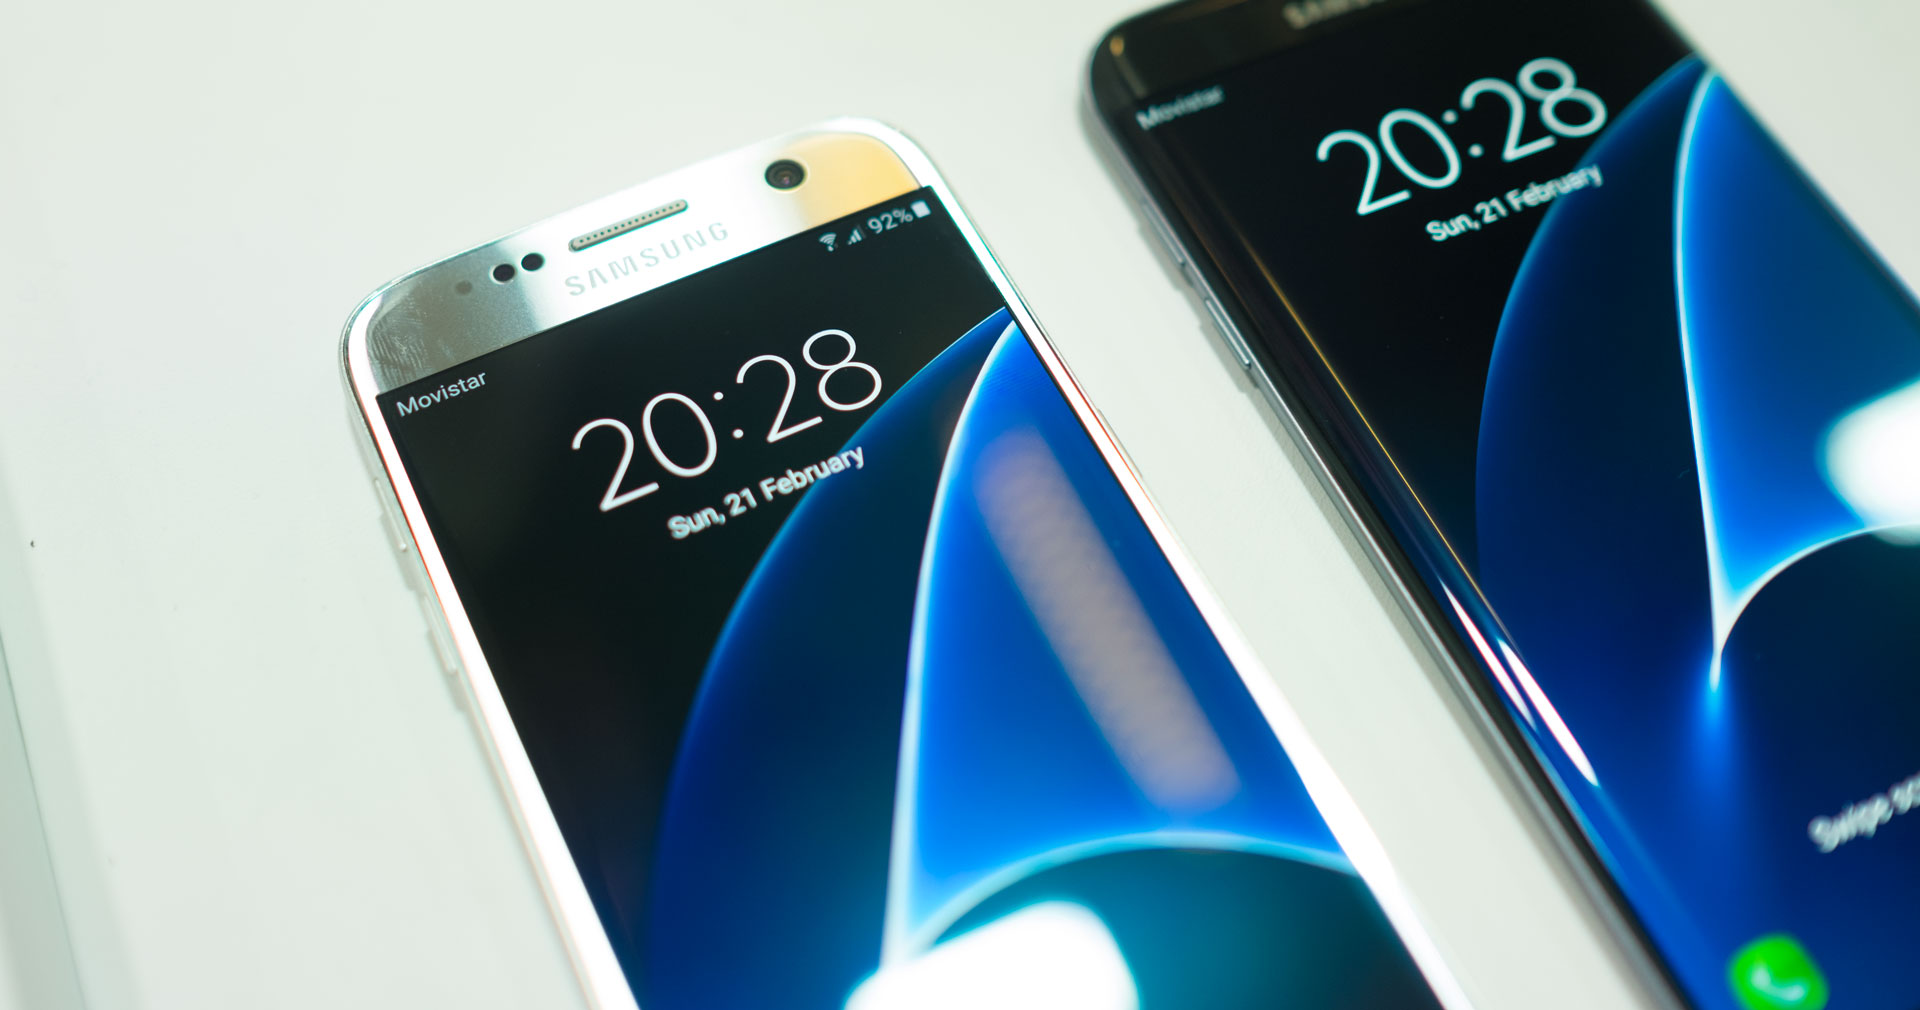 Samsung's Galaxy S7 is making this iPhone fan jealous